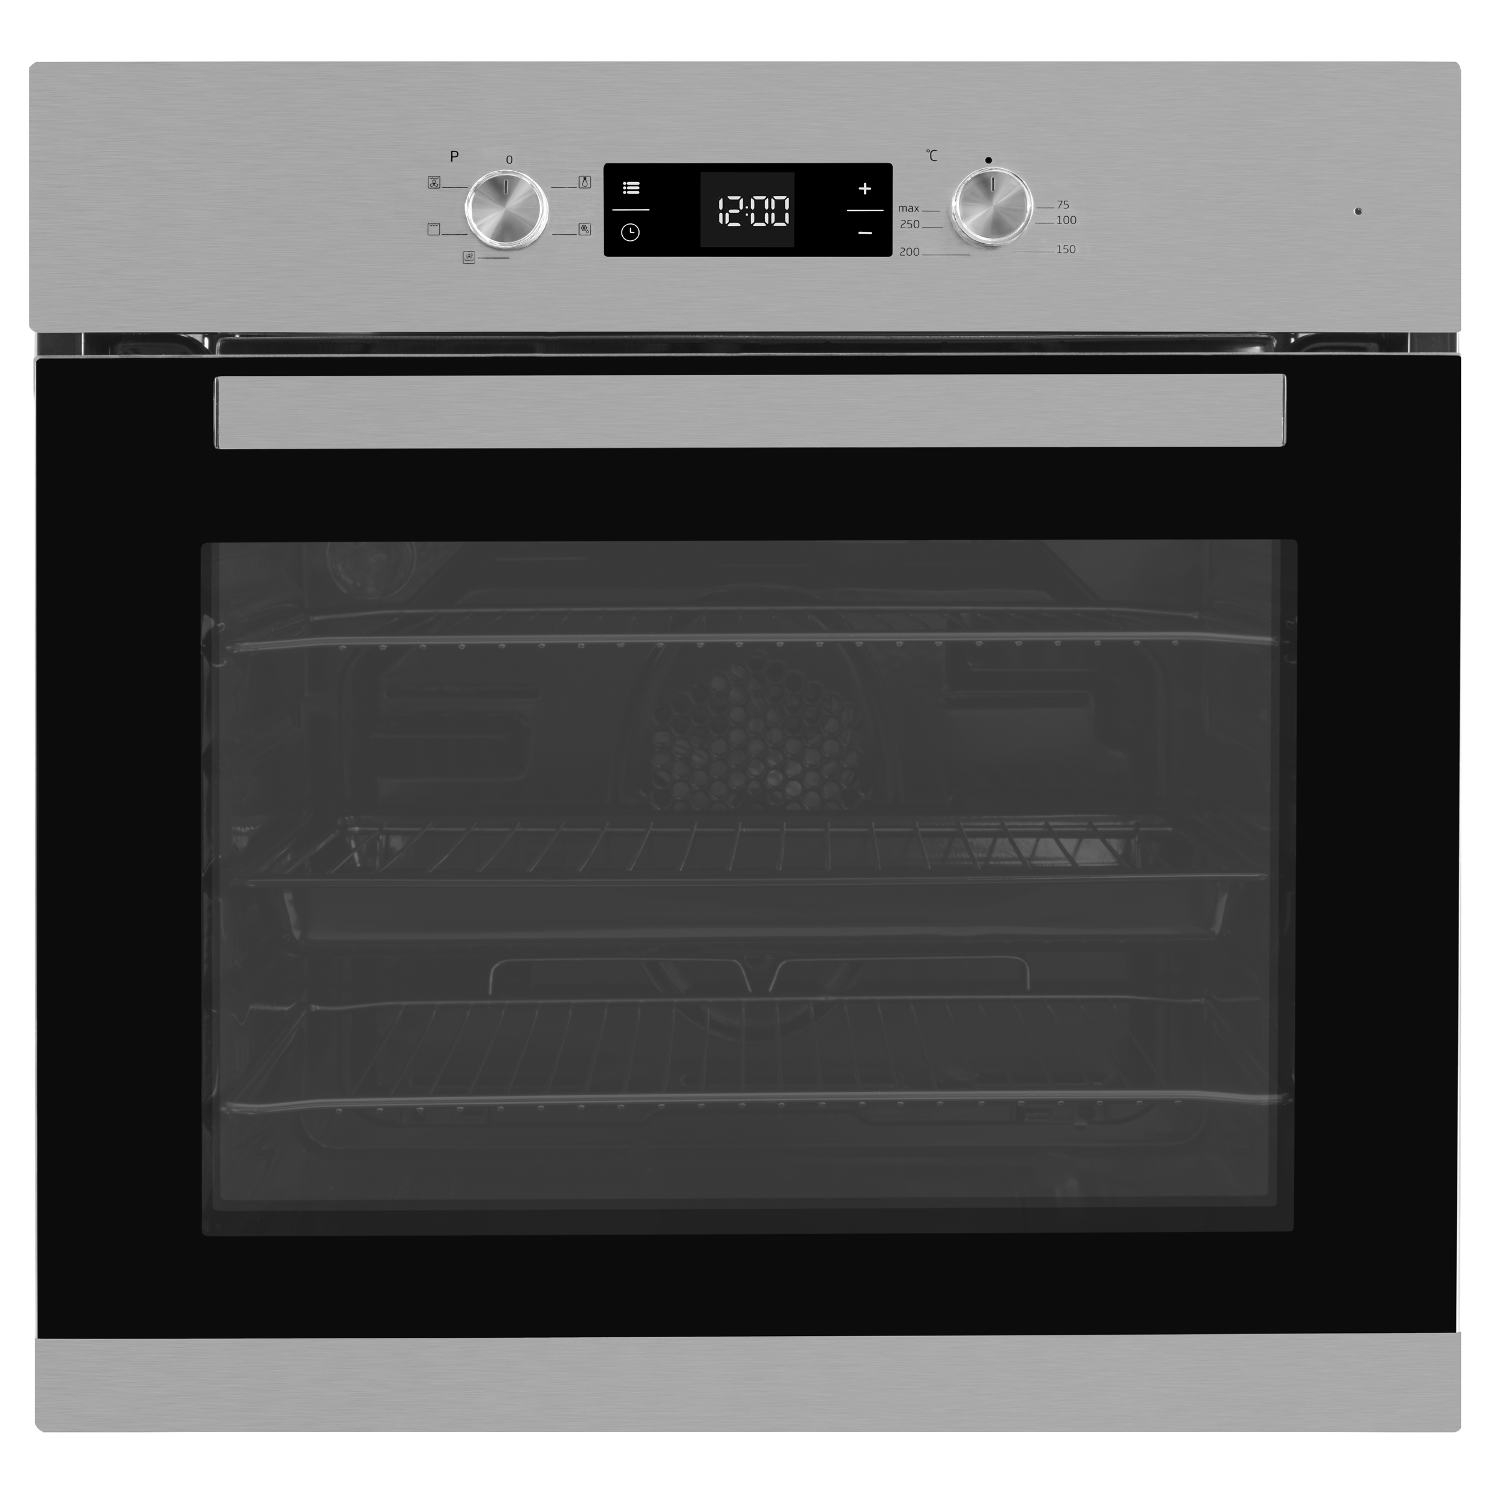 Beko Built In Single Oven in Stainless Steel 2 Year Warranty